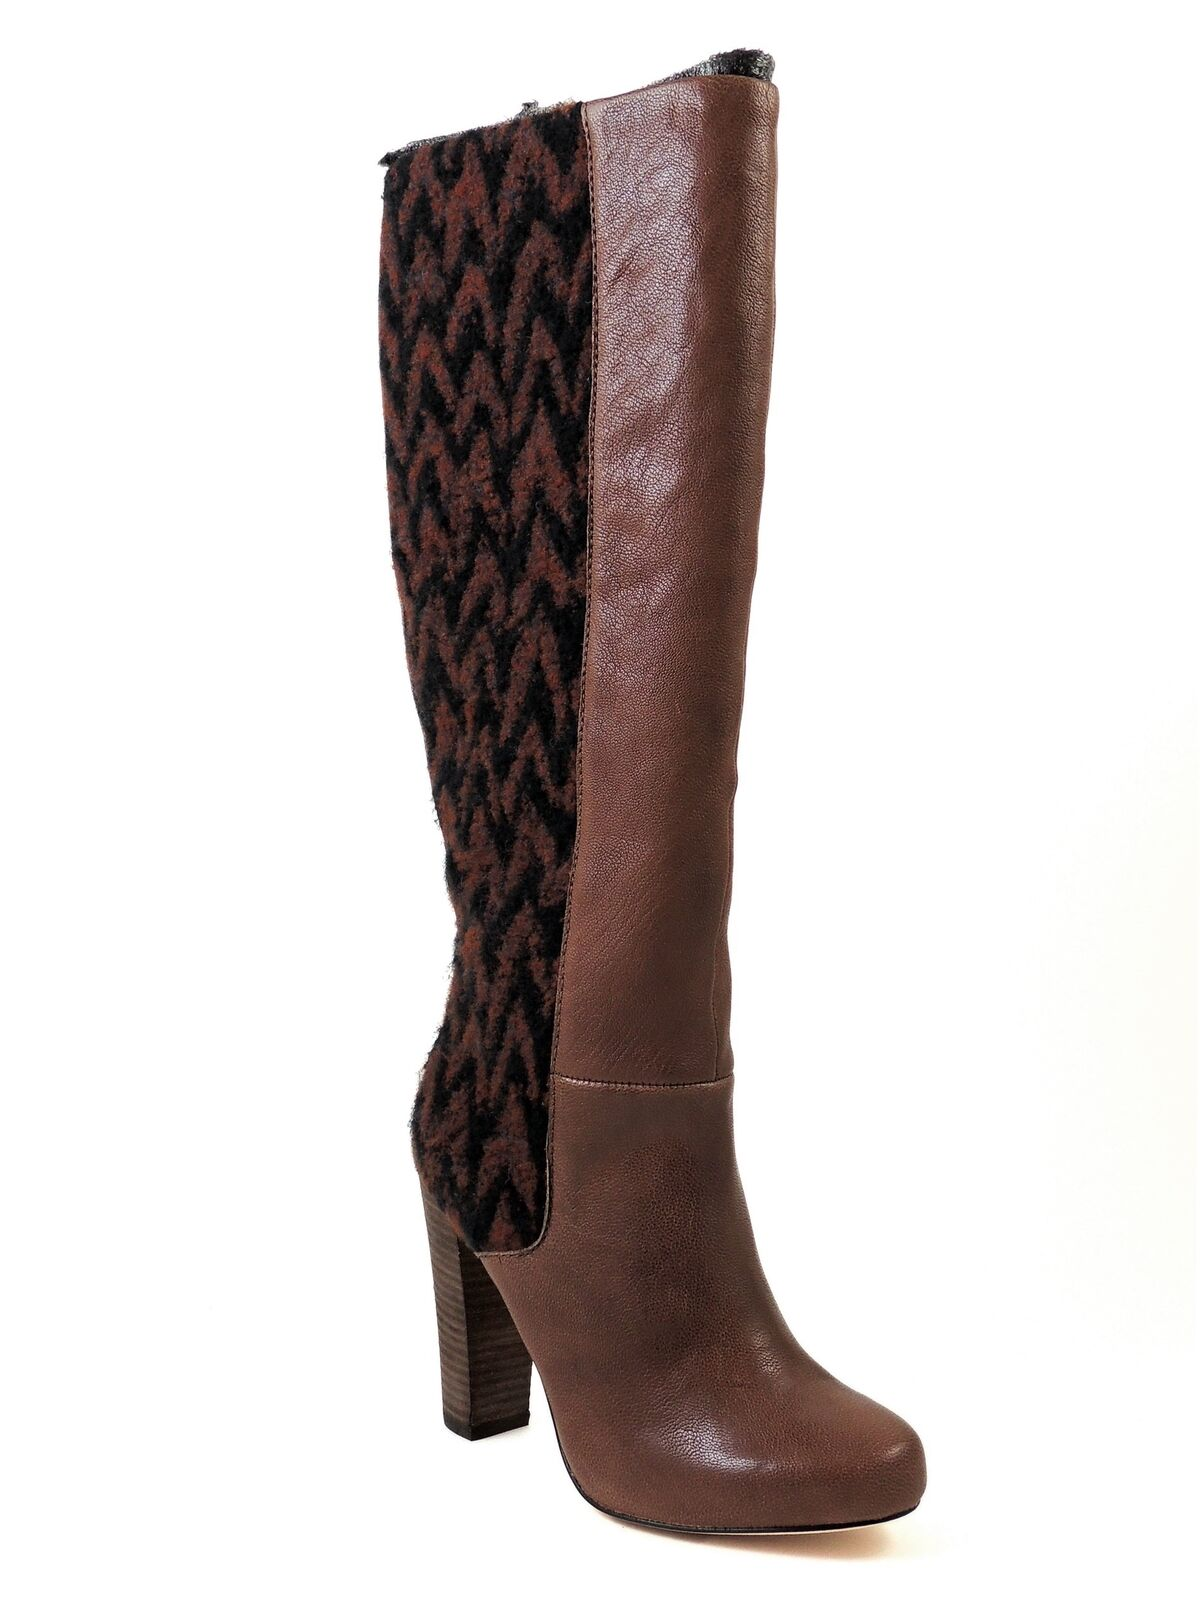 vendita calda Plenty by Tracy Reese Donna  Royale Cognac Knee-High stivali stivali stivali Euro 38.5 US 8.5  prezzo basso